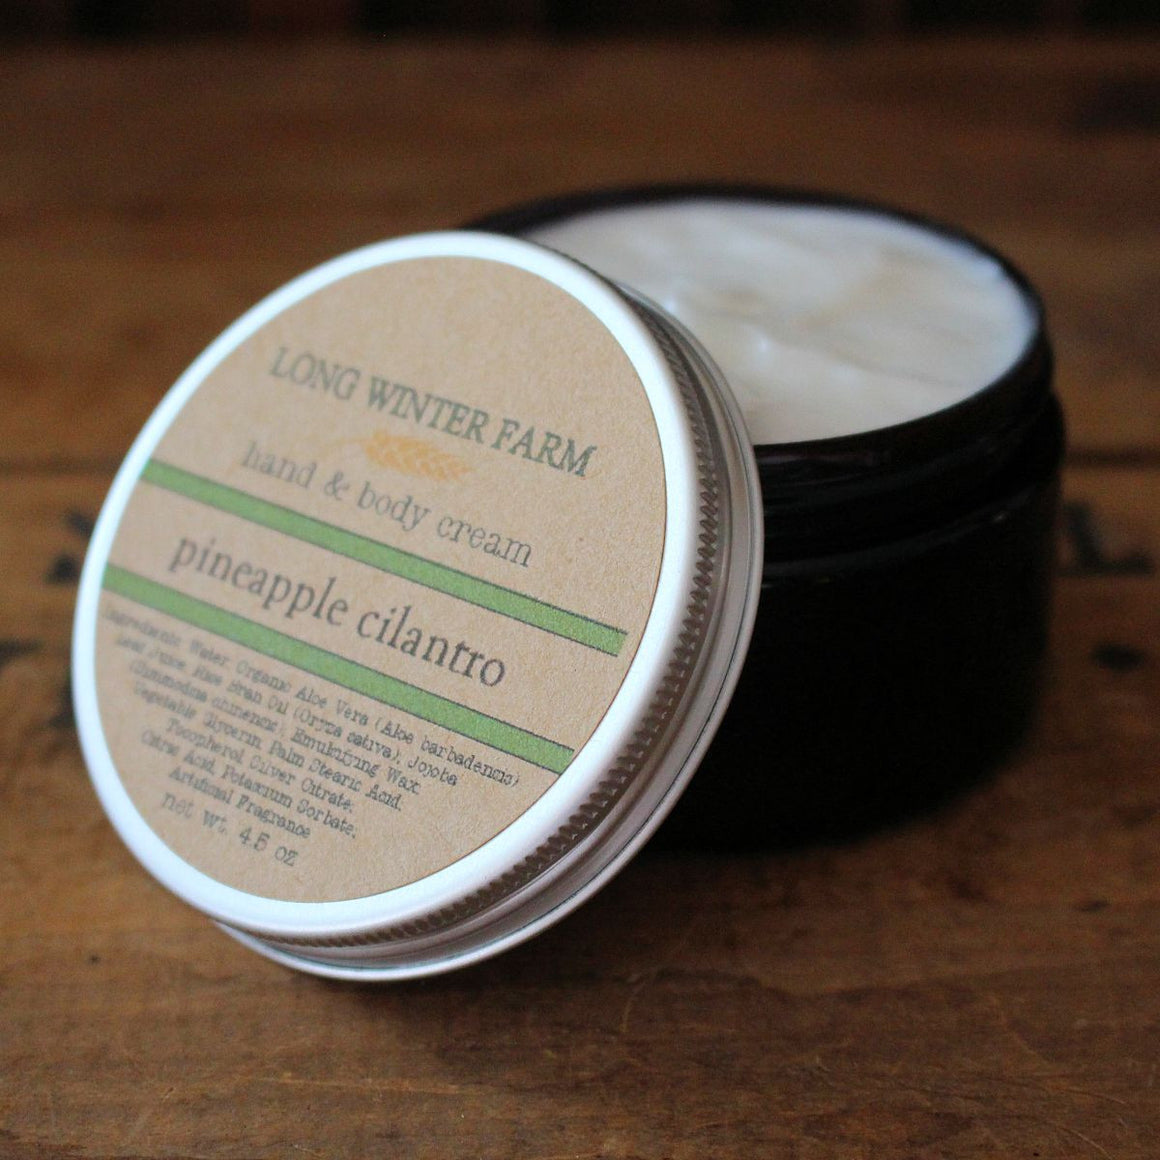 Pineapple Cilantro Skin Cream